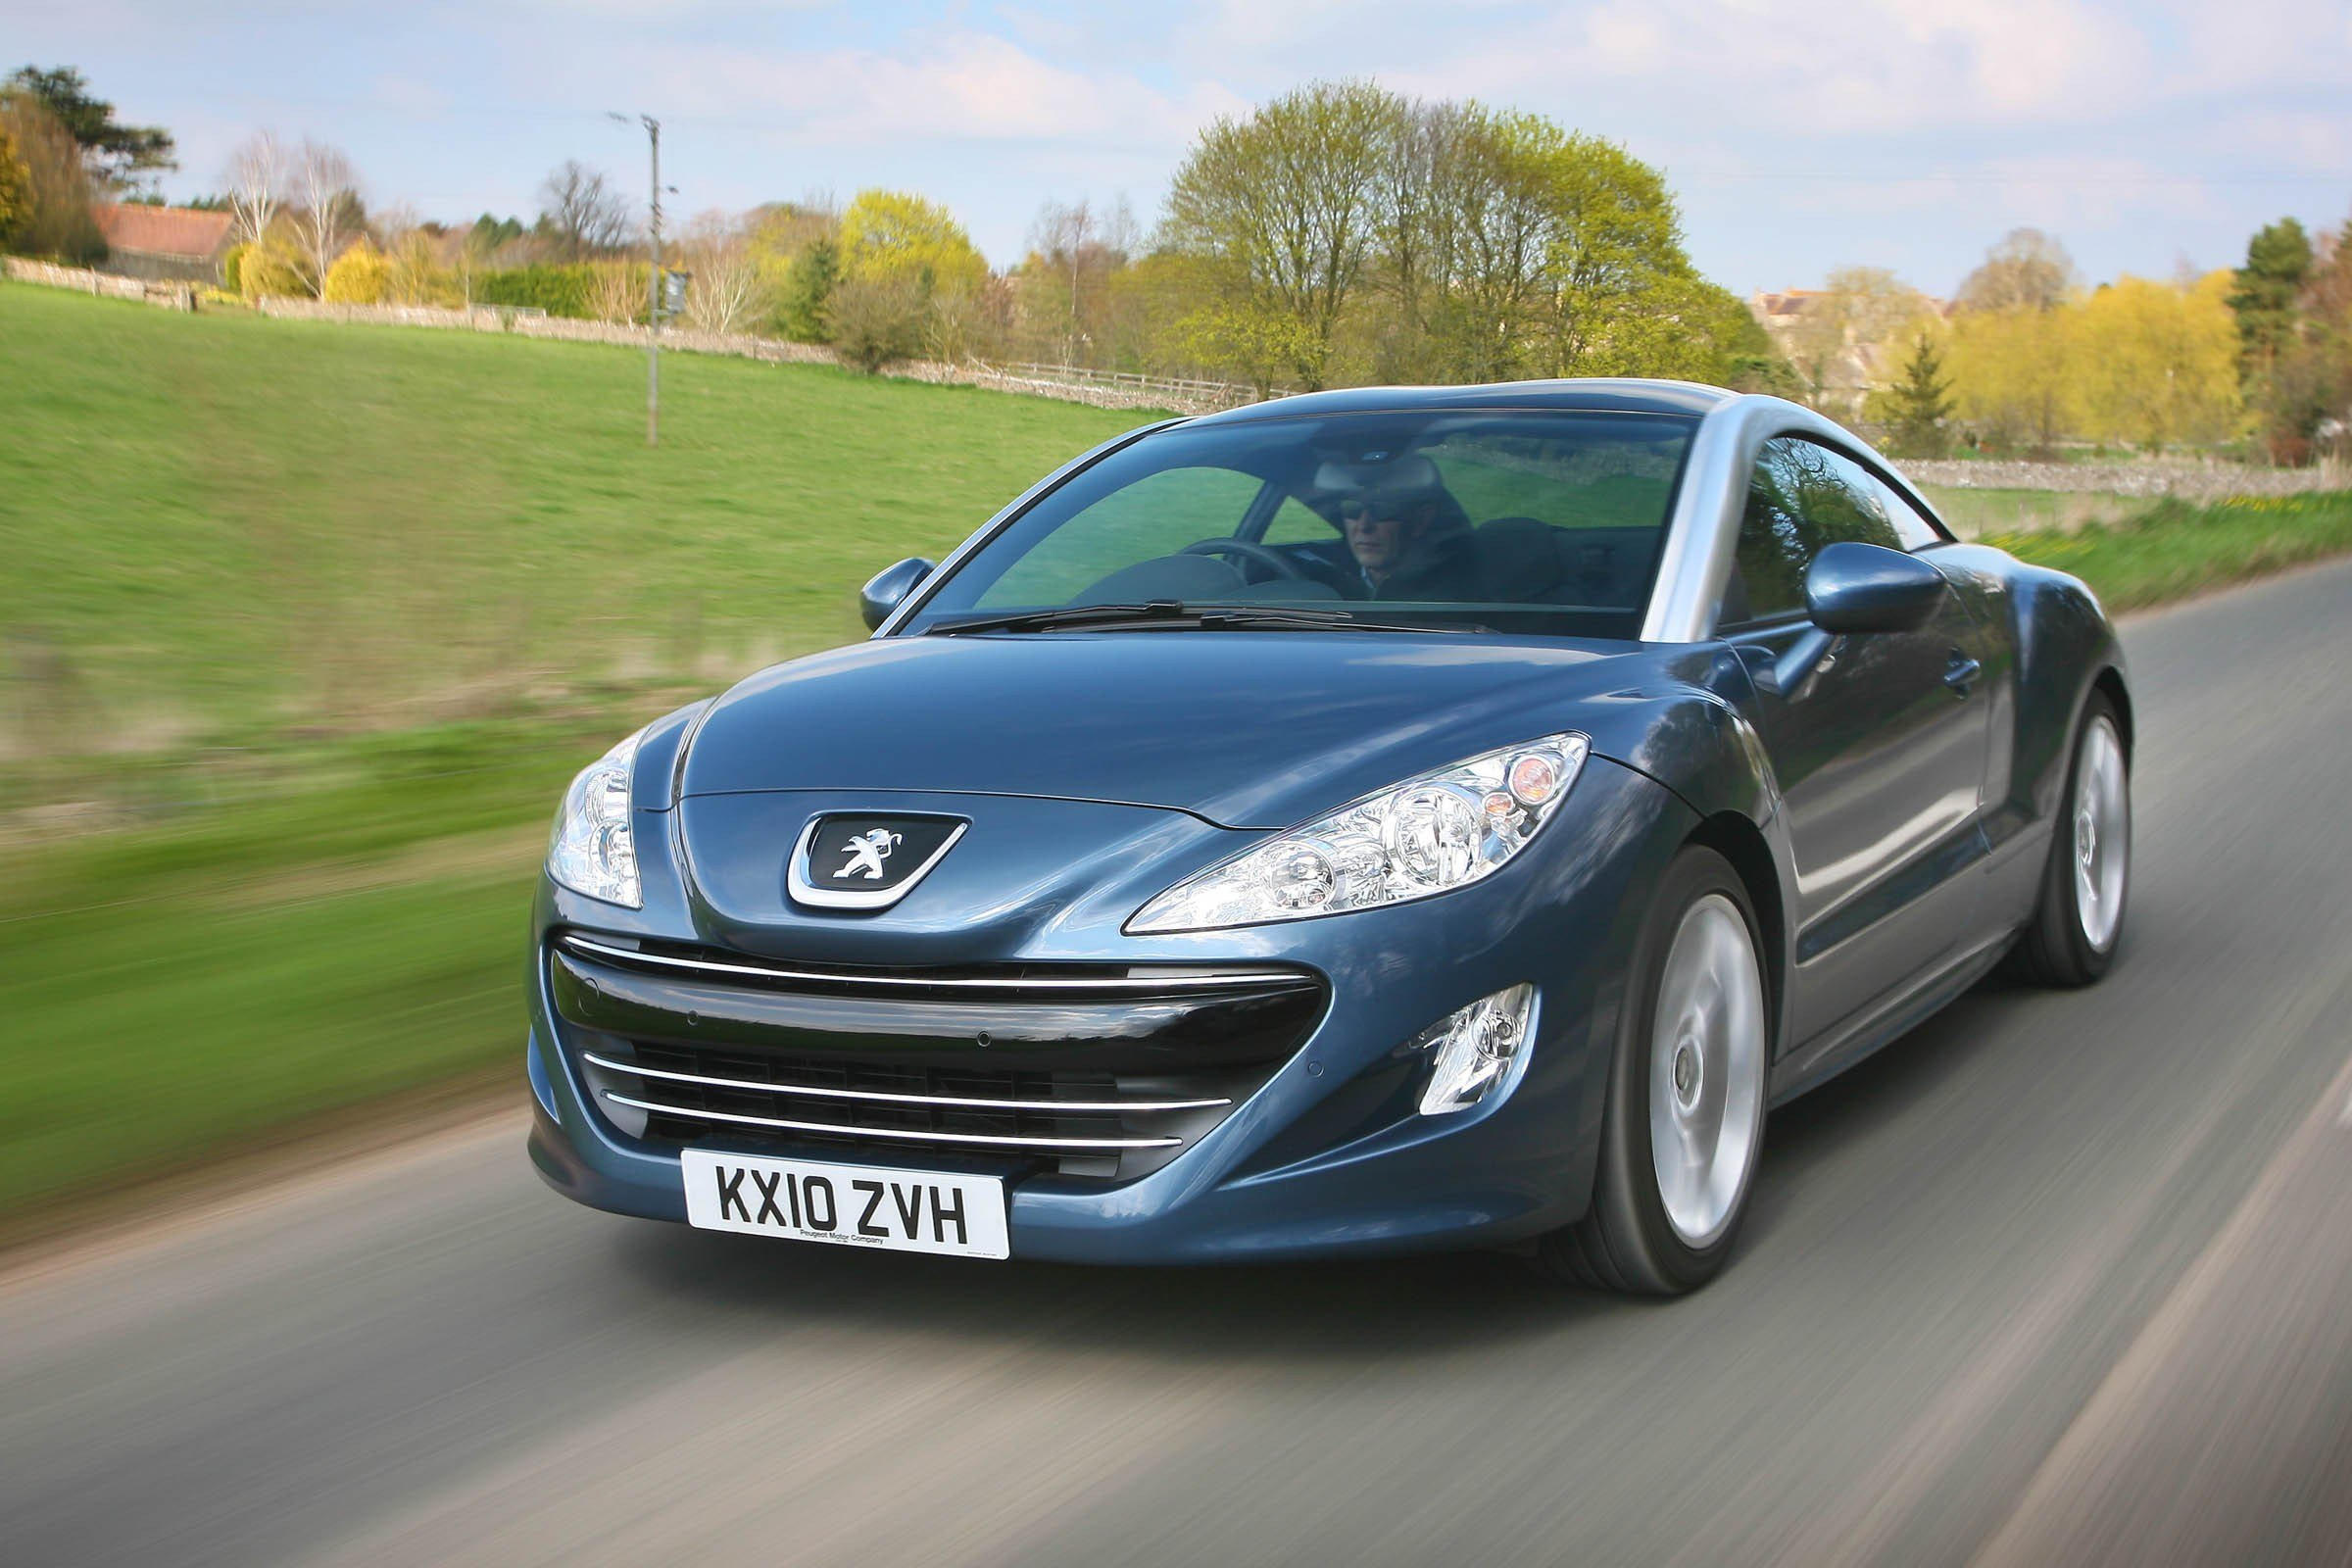 Latest Cheap Fun Cars Our Used Sporty Car Picks From £1 000 To £ Free Download